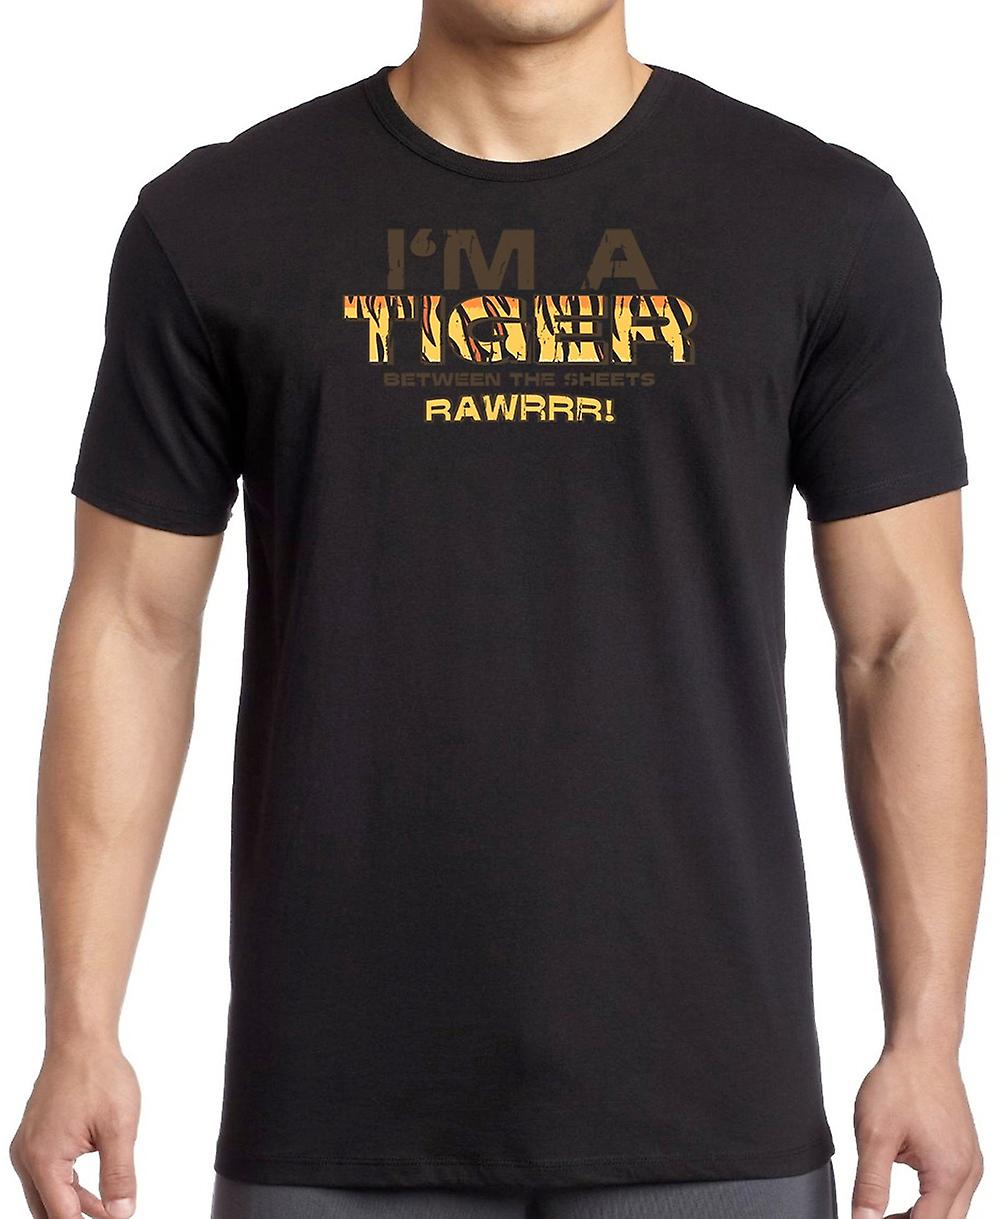 Im A Tiger Between The Sheets - Rawrrr - Funny T Shirt